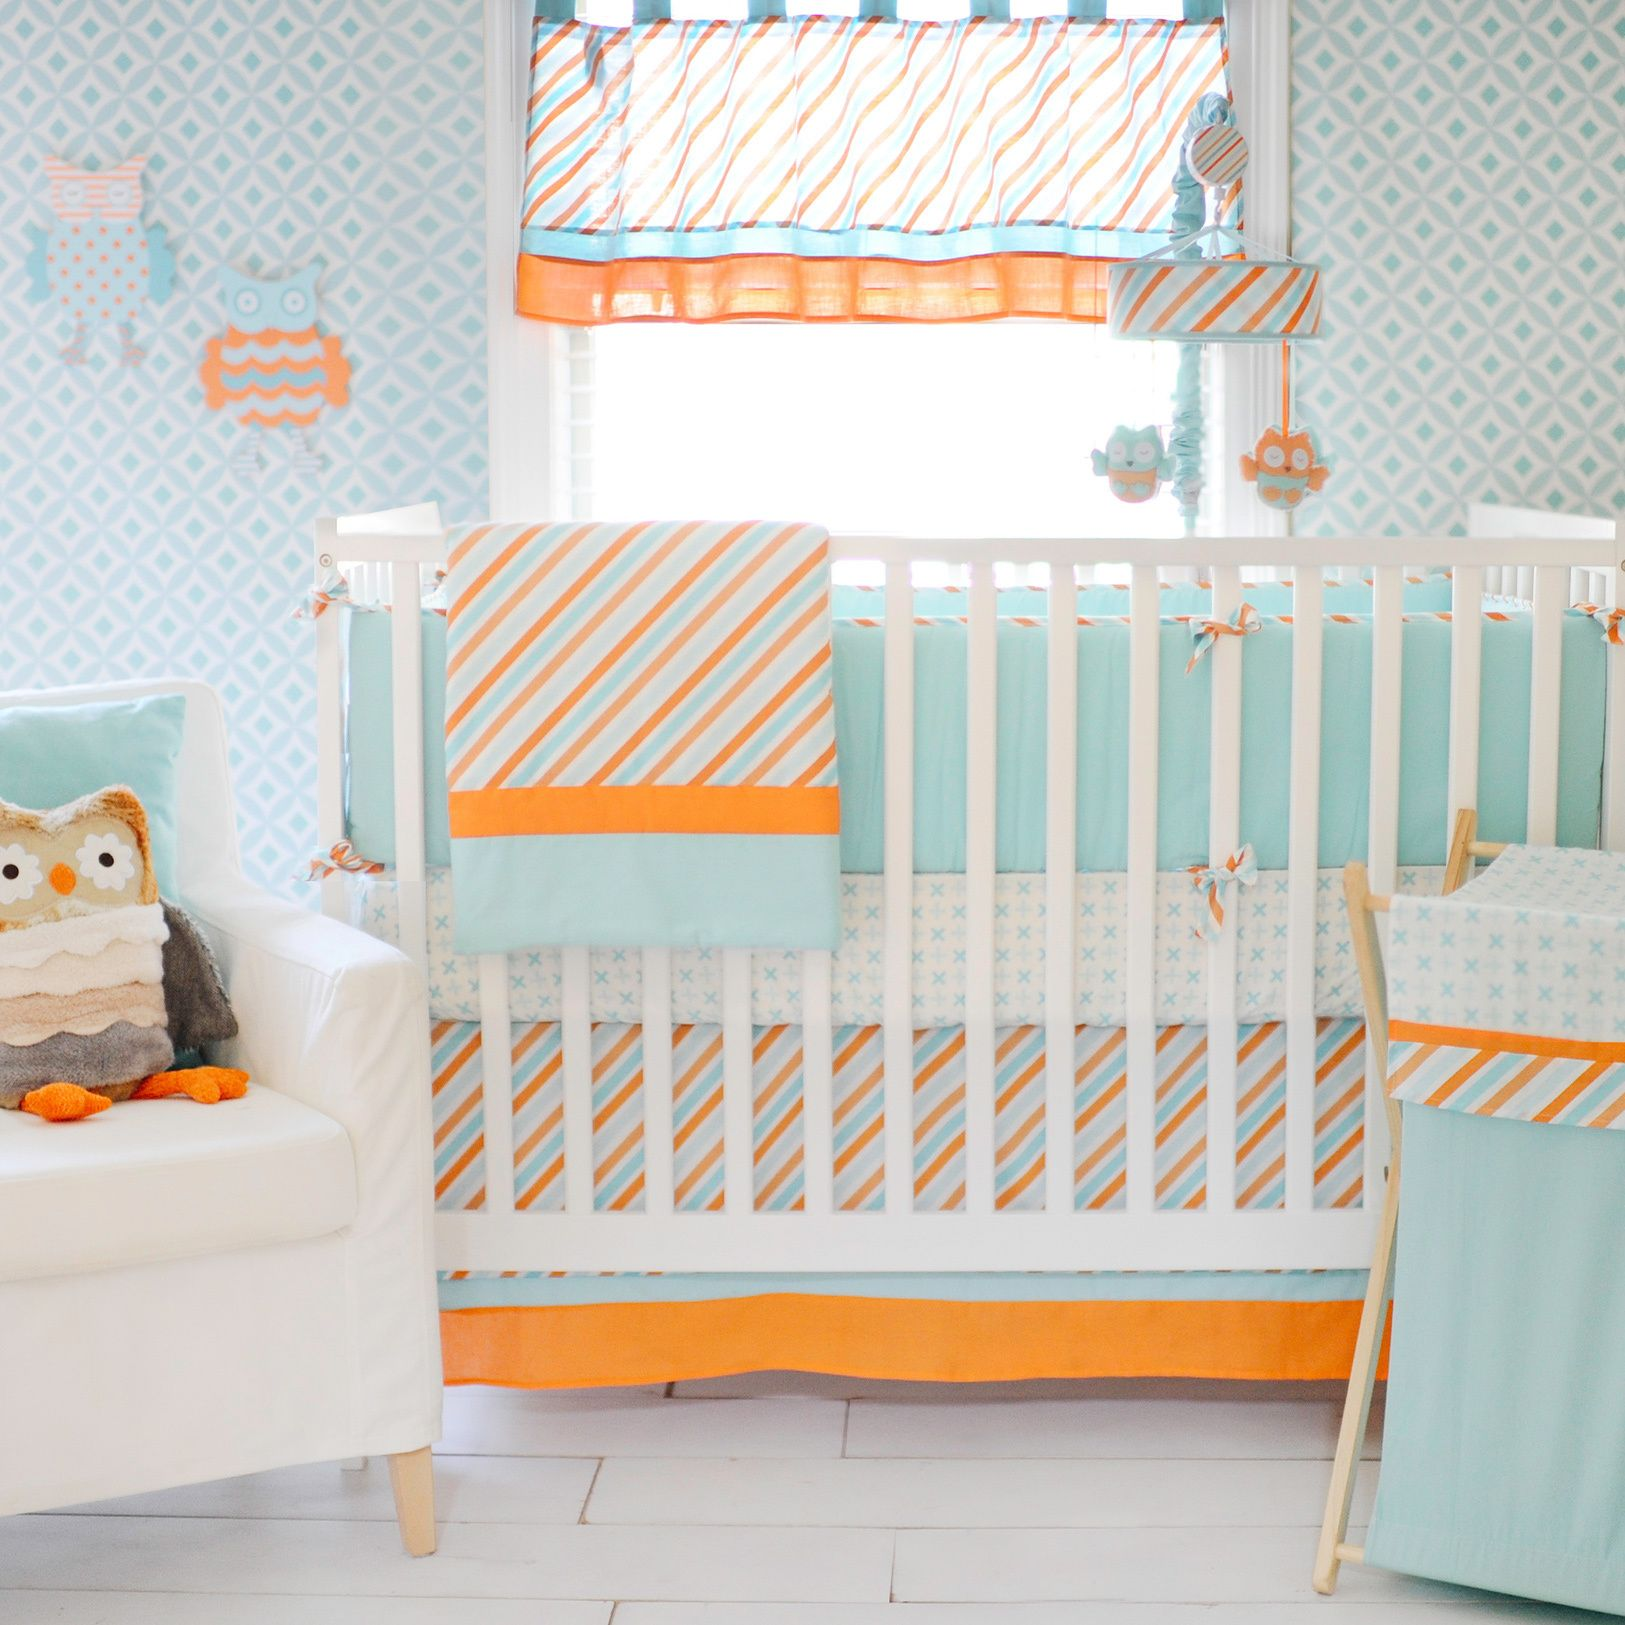 Create a sweet and simple nursery for